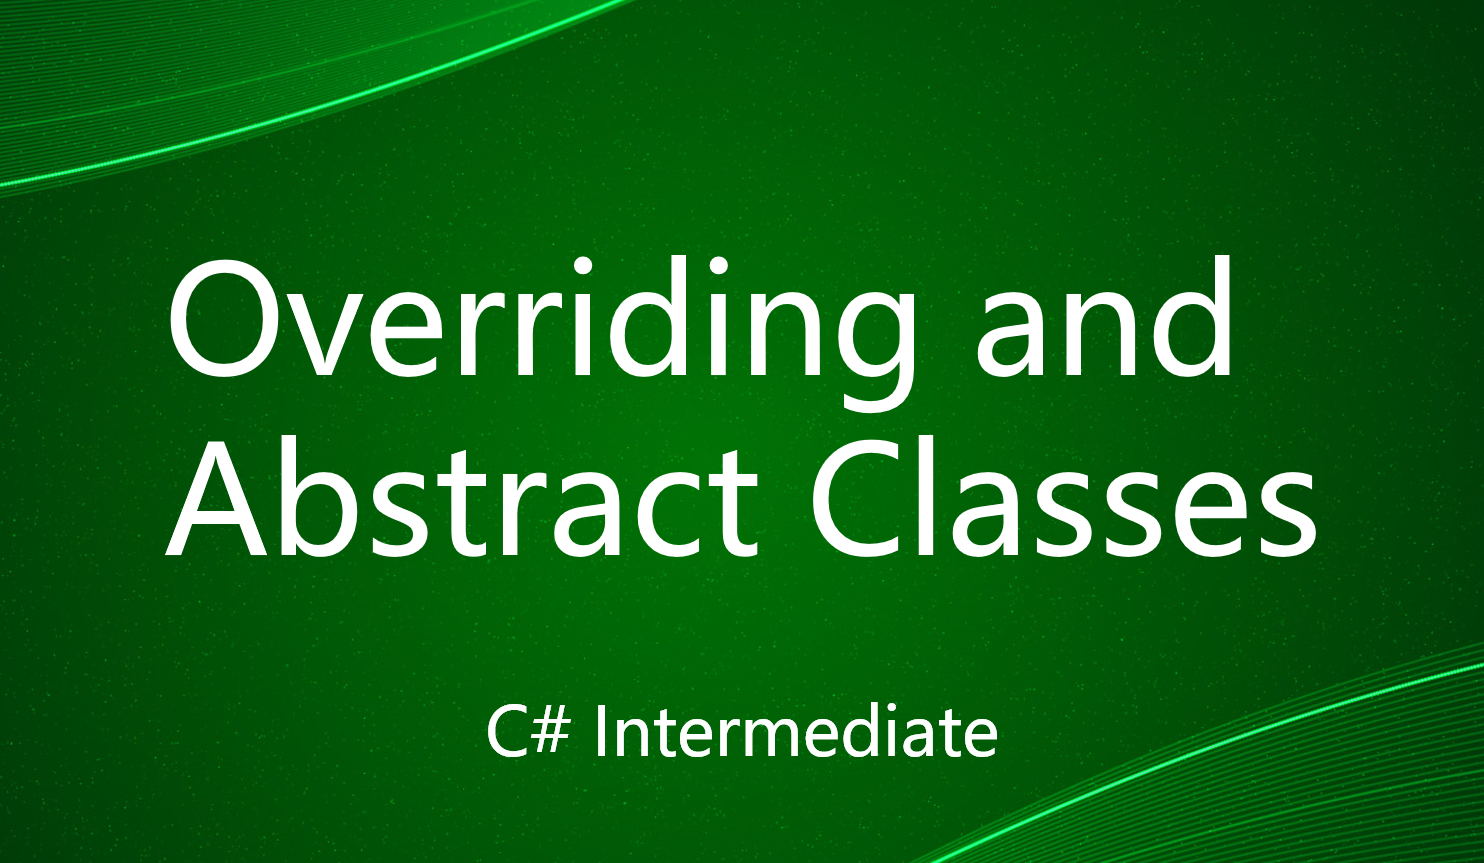 Overriding and Abstract Classes